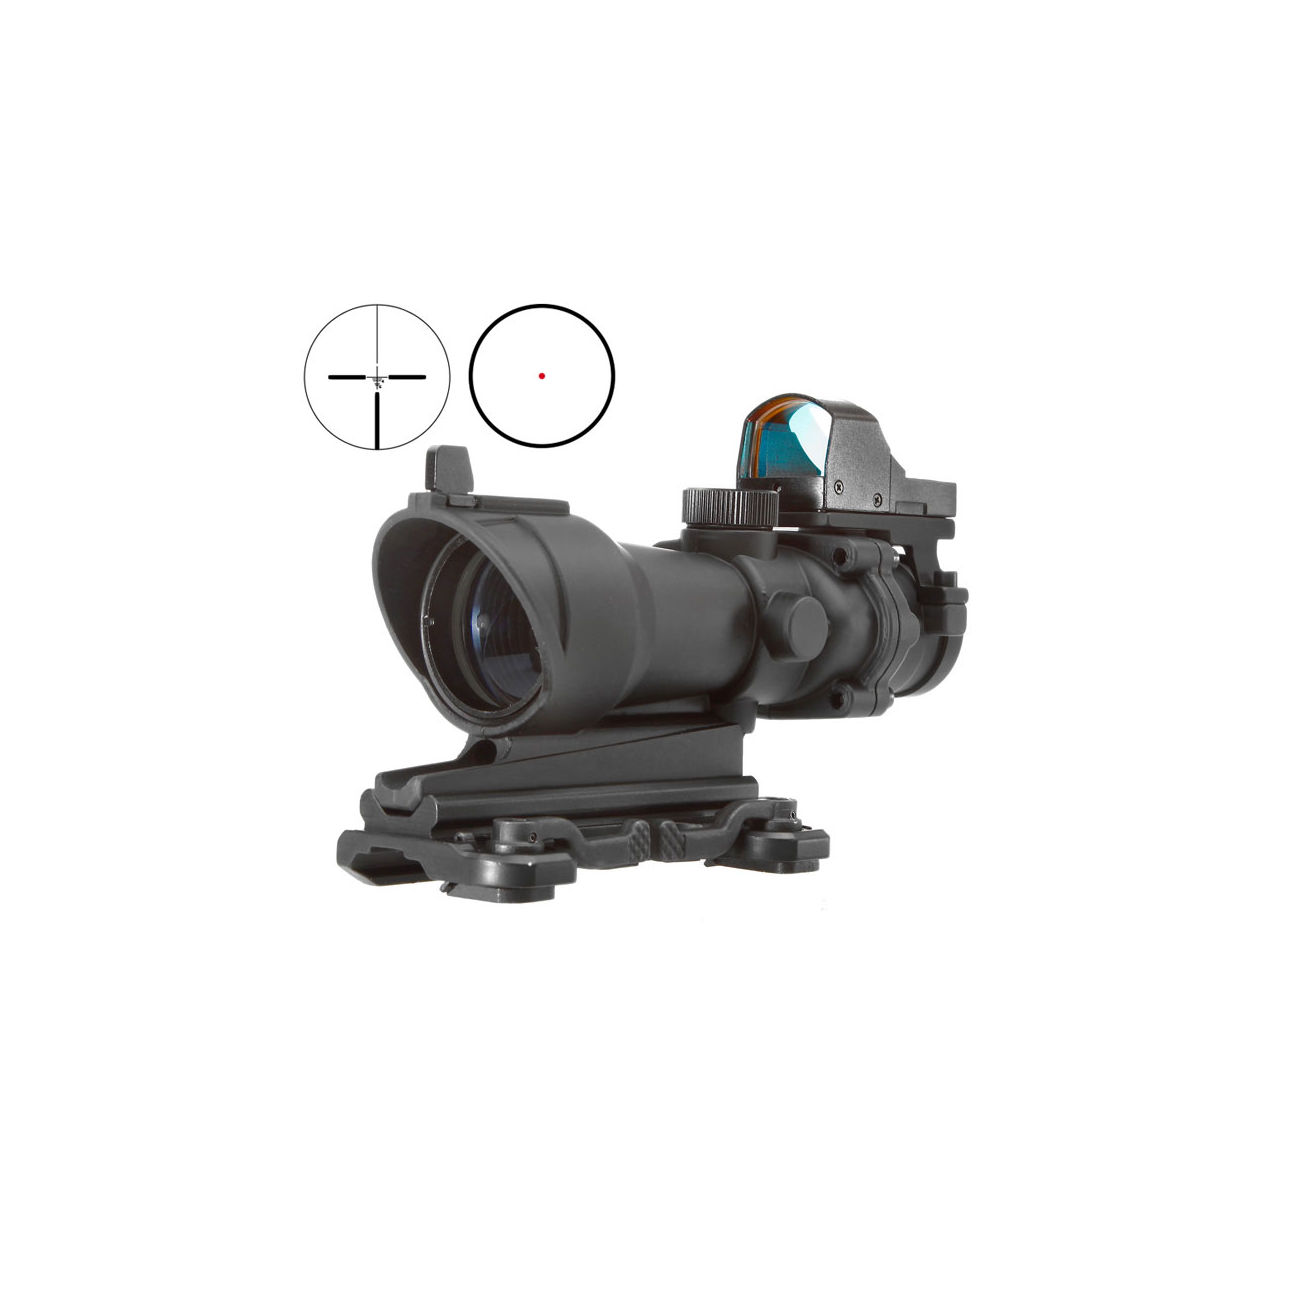 Aim-O TA01 Style Scope 4x32 QD-Mount mit Mini RedDot Visier schwarz 5316-BK 0